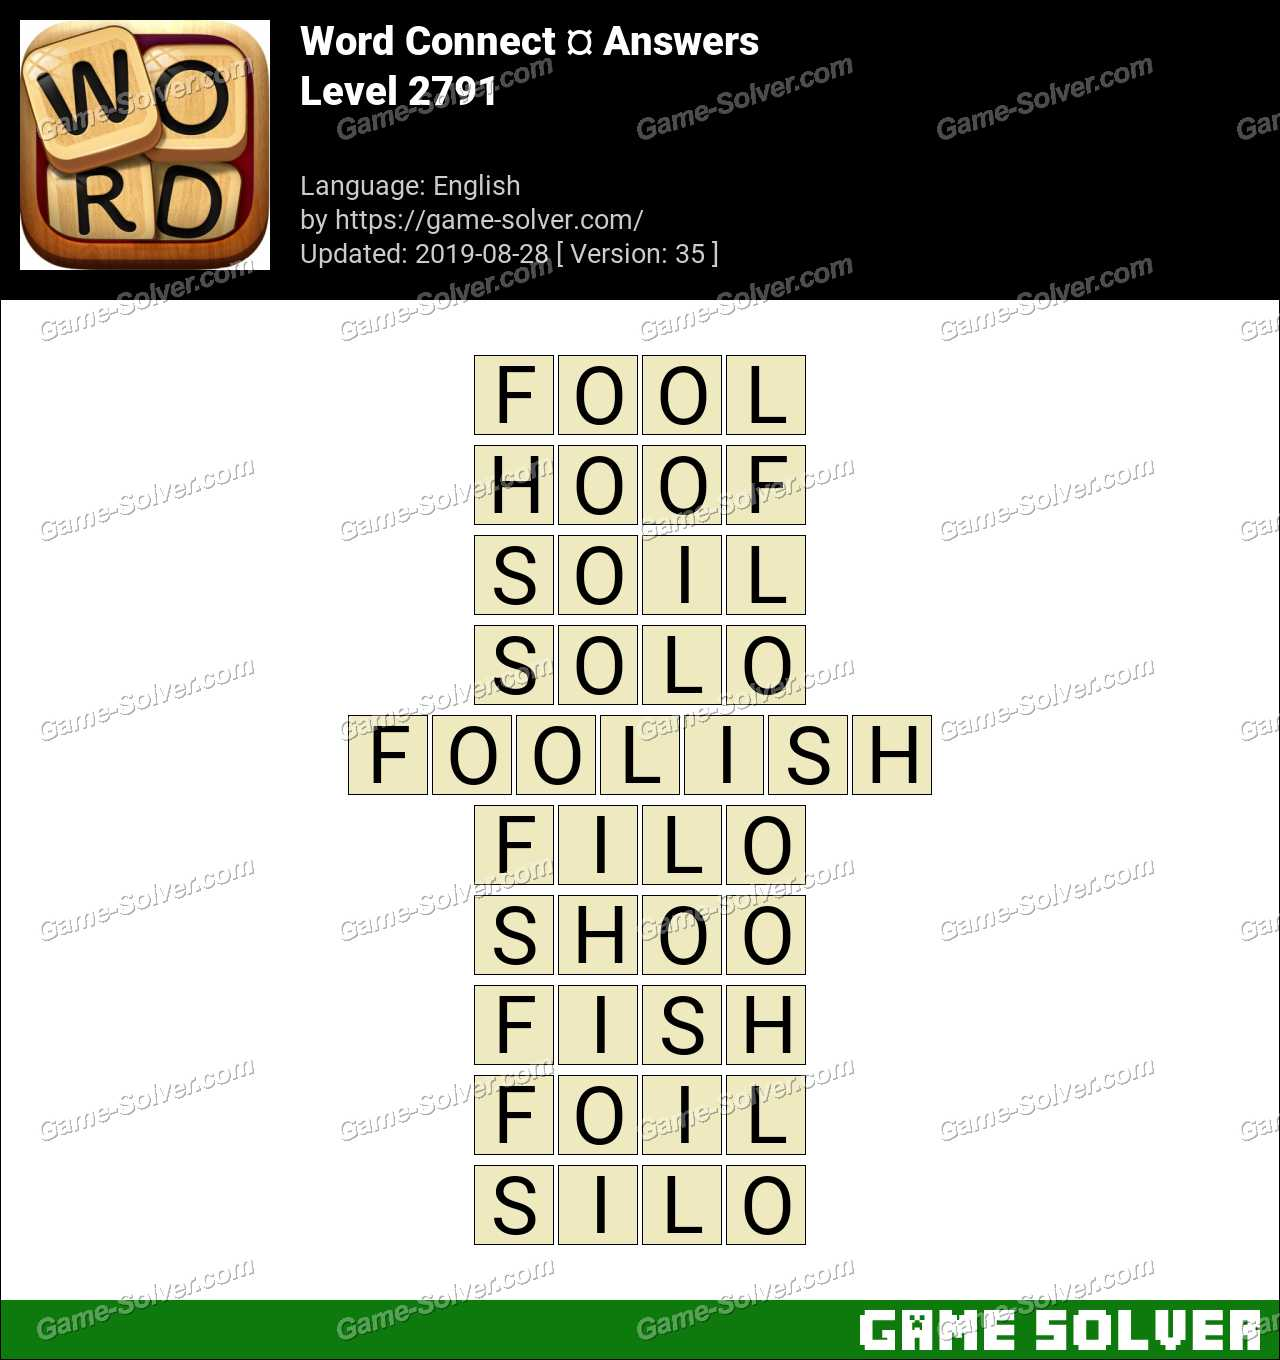 Word Connect Level 2791 Answers